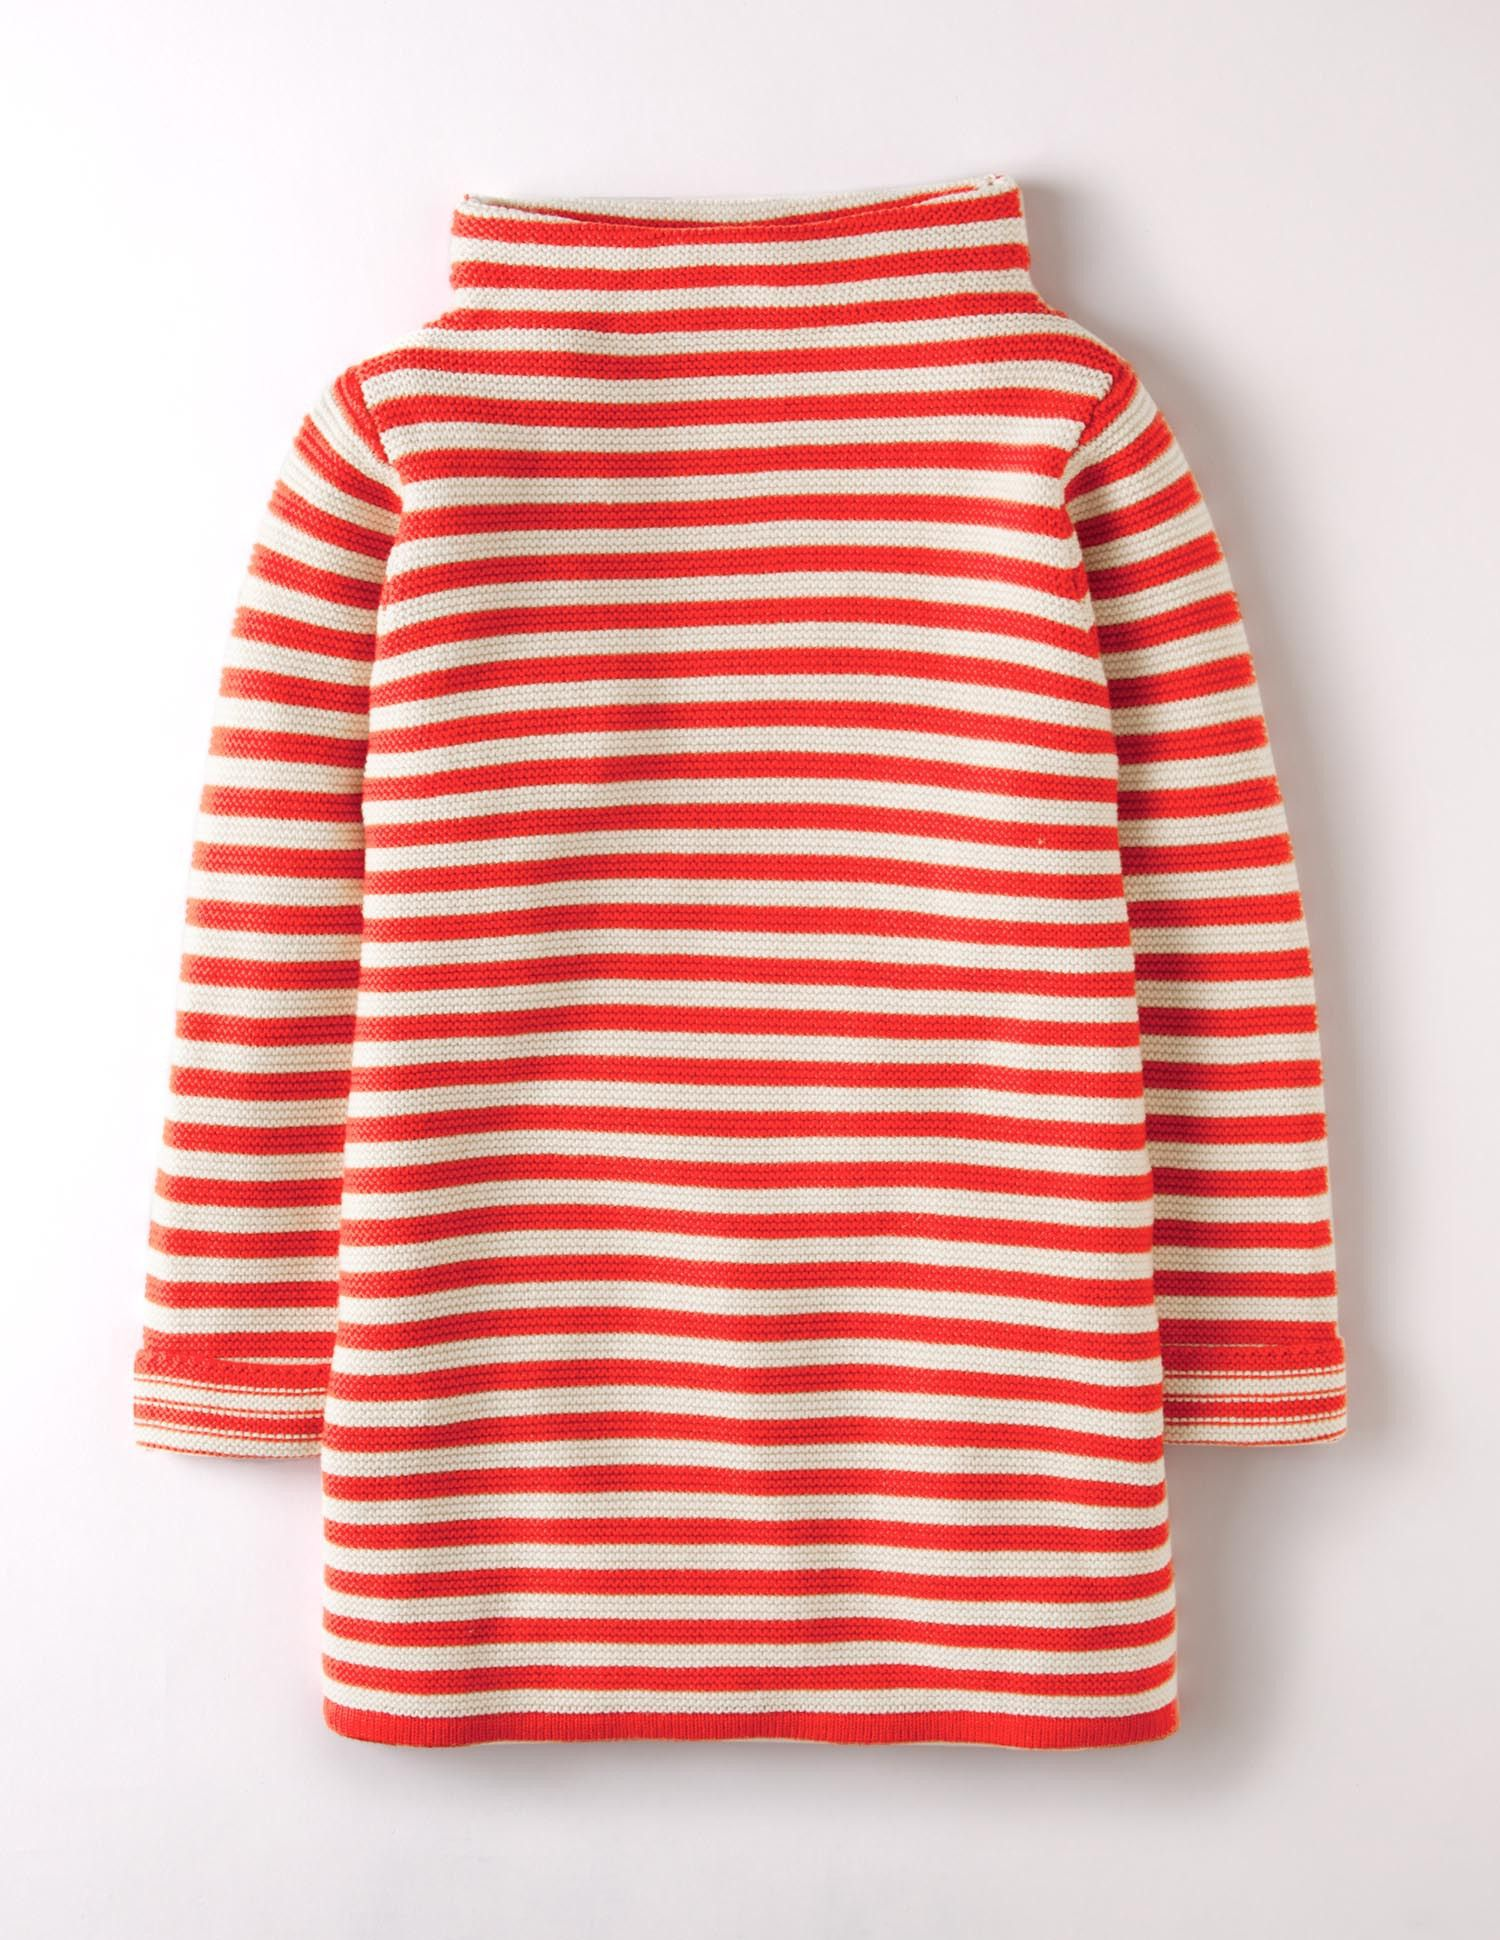 Sophia Pullover Wk944 Pullover Bei Boden Clothes For Women